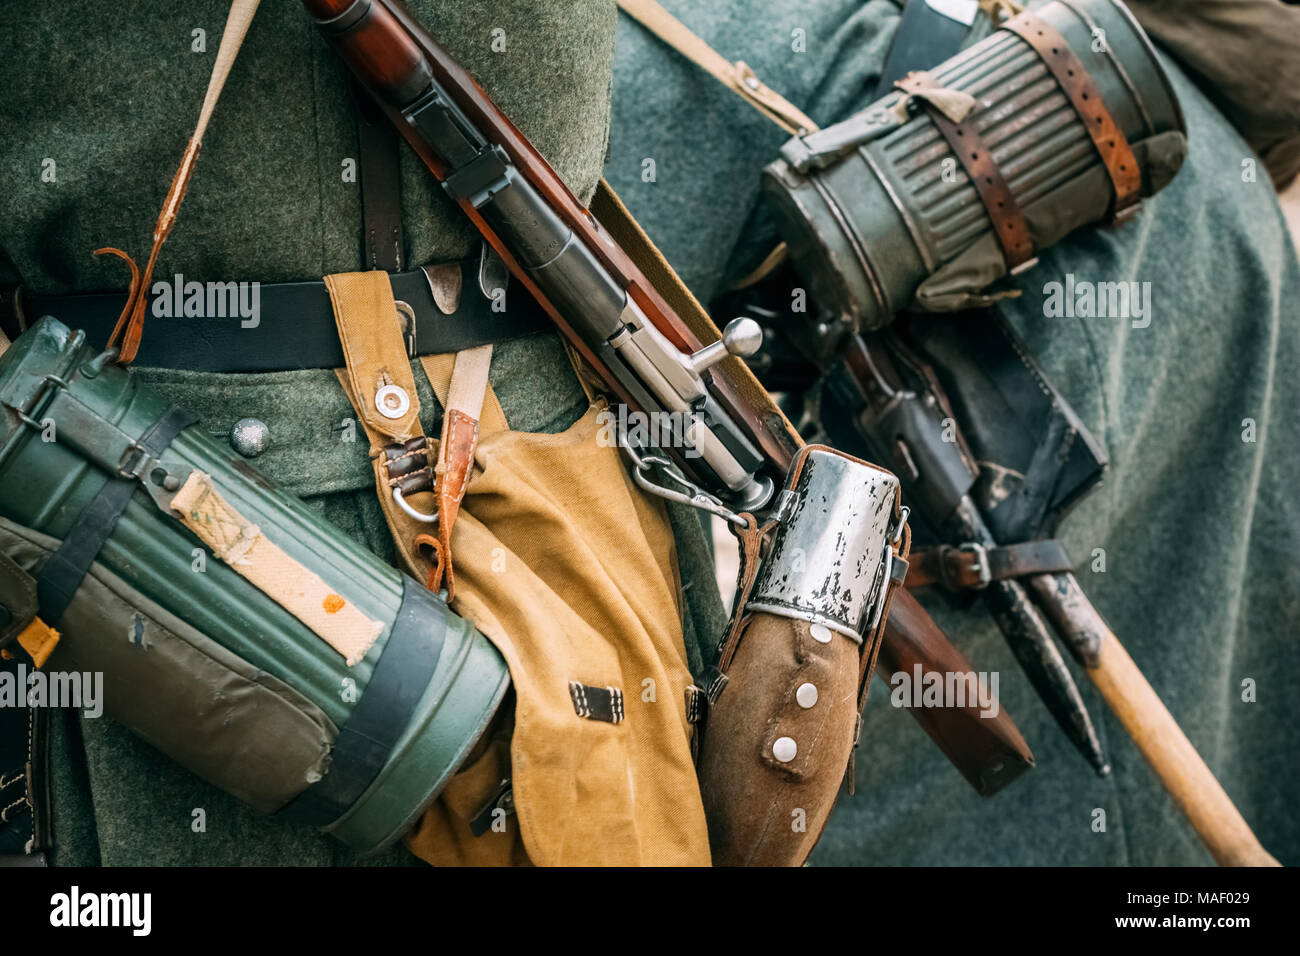 Rifle, flask and other equipment soldier Wehrmacht during the Second World War Stock Photo